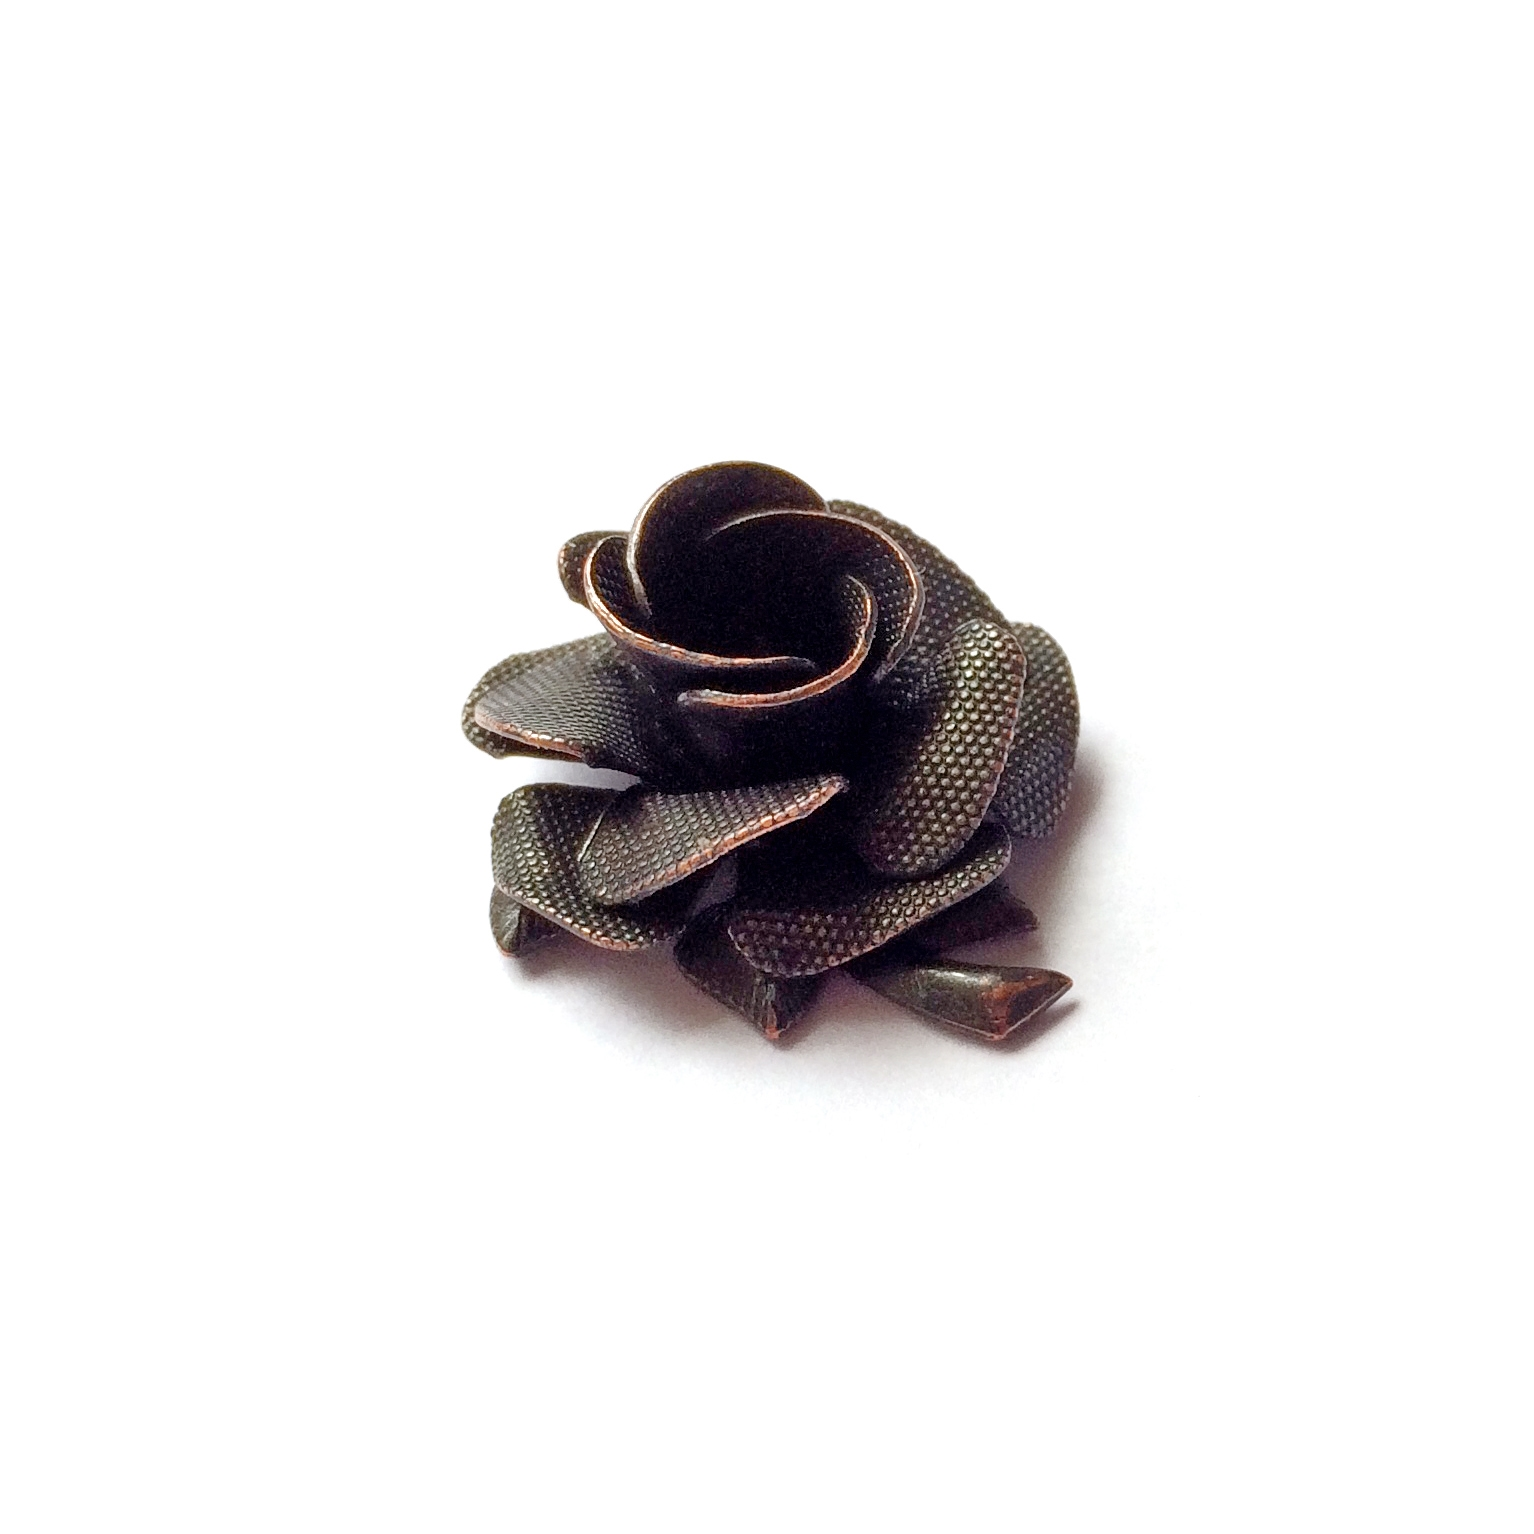 brass tea roses, riveted flowers, rusted iron brass, 0691, B'sue Boutiques, nickel free, US made, brass jewelry parts, antique copper, vintage jewellery supplies, layered flowers, brass flowers, vintage brass flowers